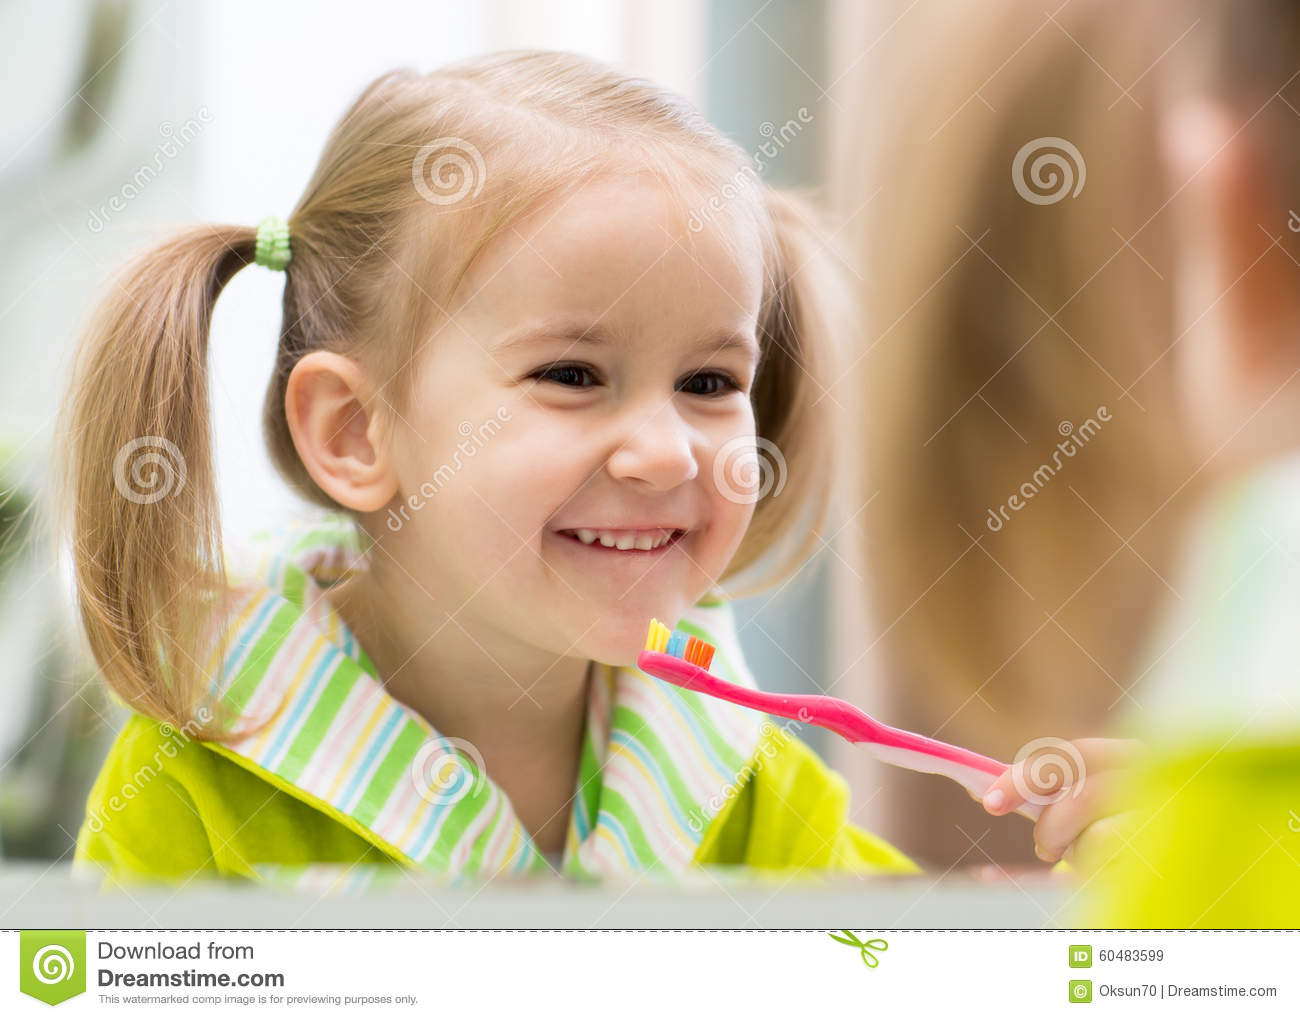 44cb19ead4 Kid Girl Brushing Teeth In Bathroom Stock Image - Image of little ...